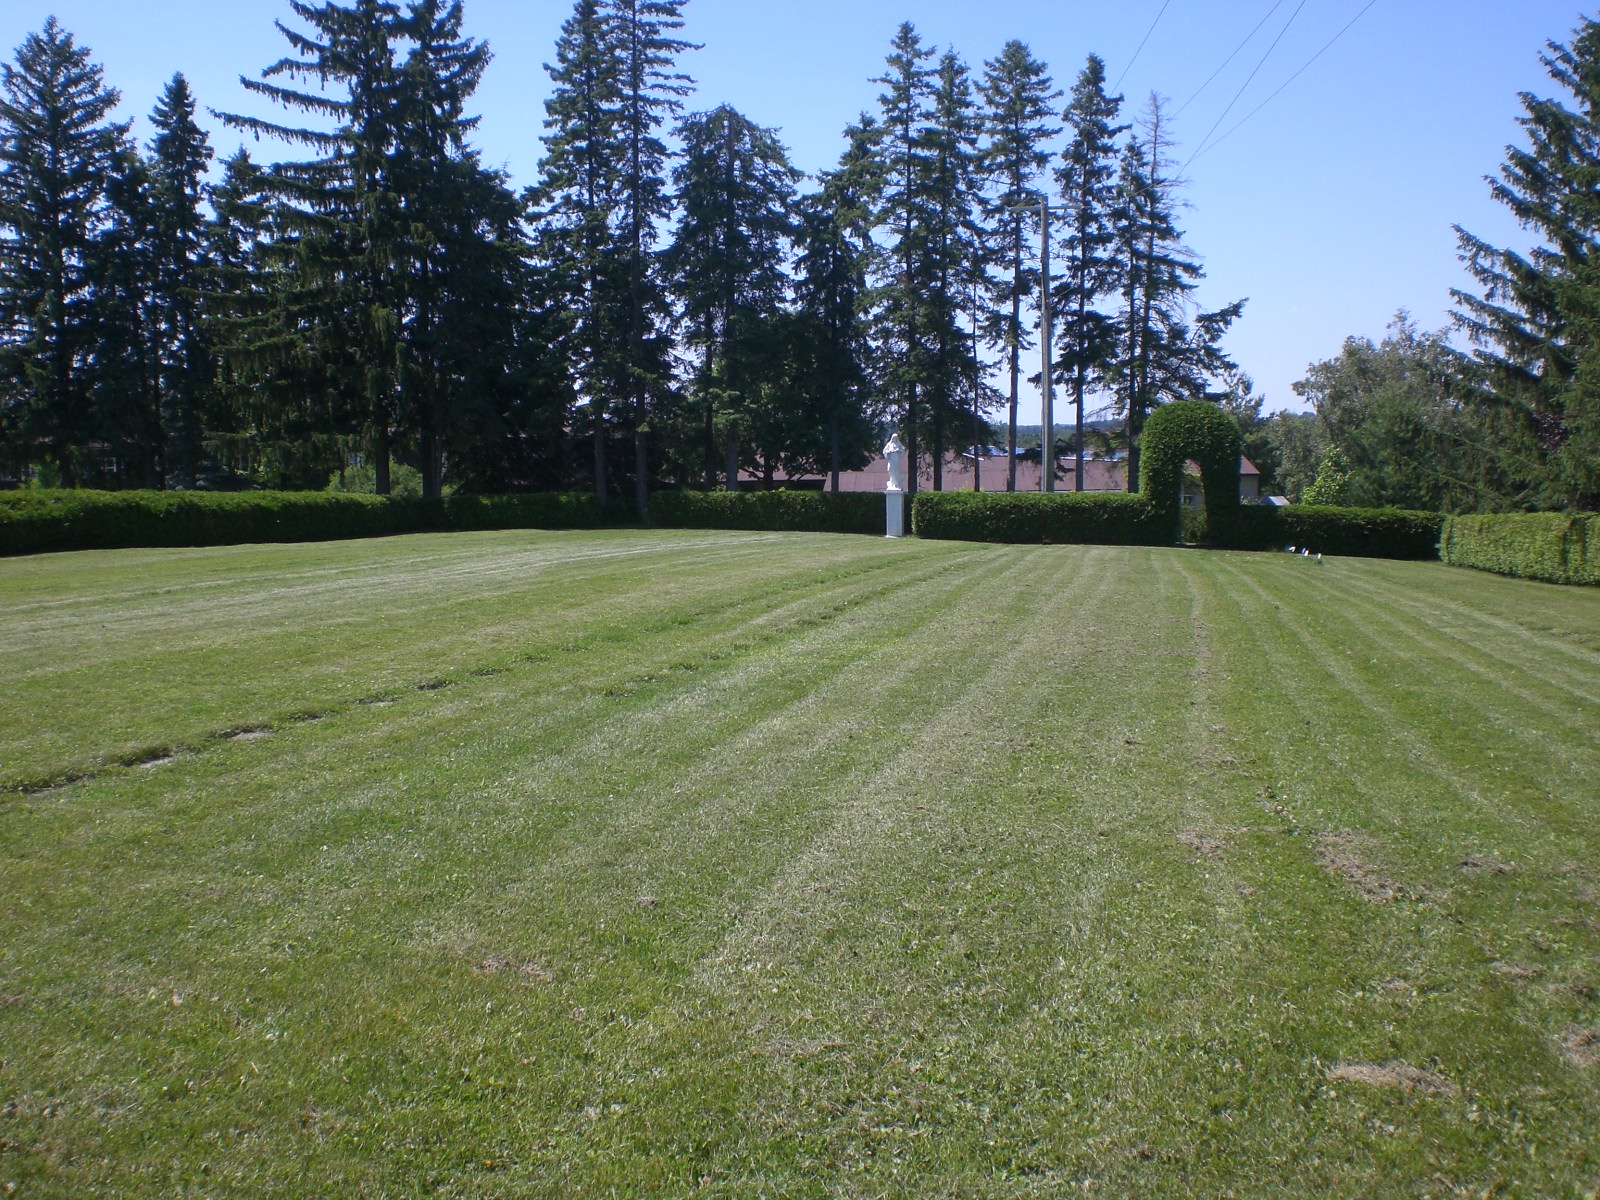 Jesuit cemetery, Guelph. Source: commons.wkipedia.org